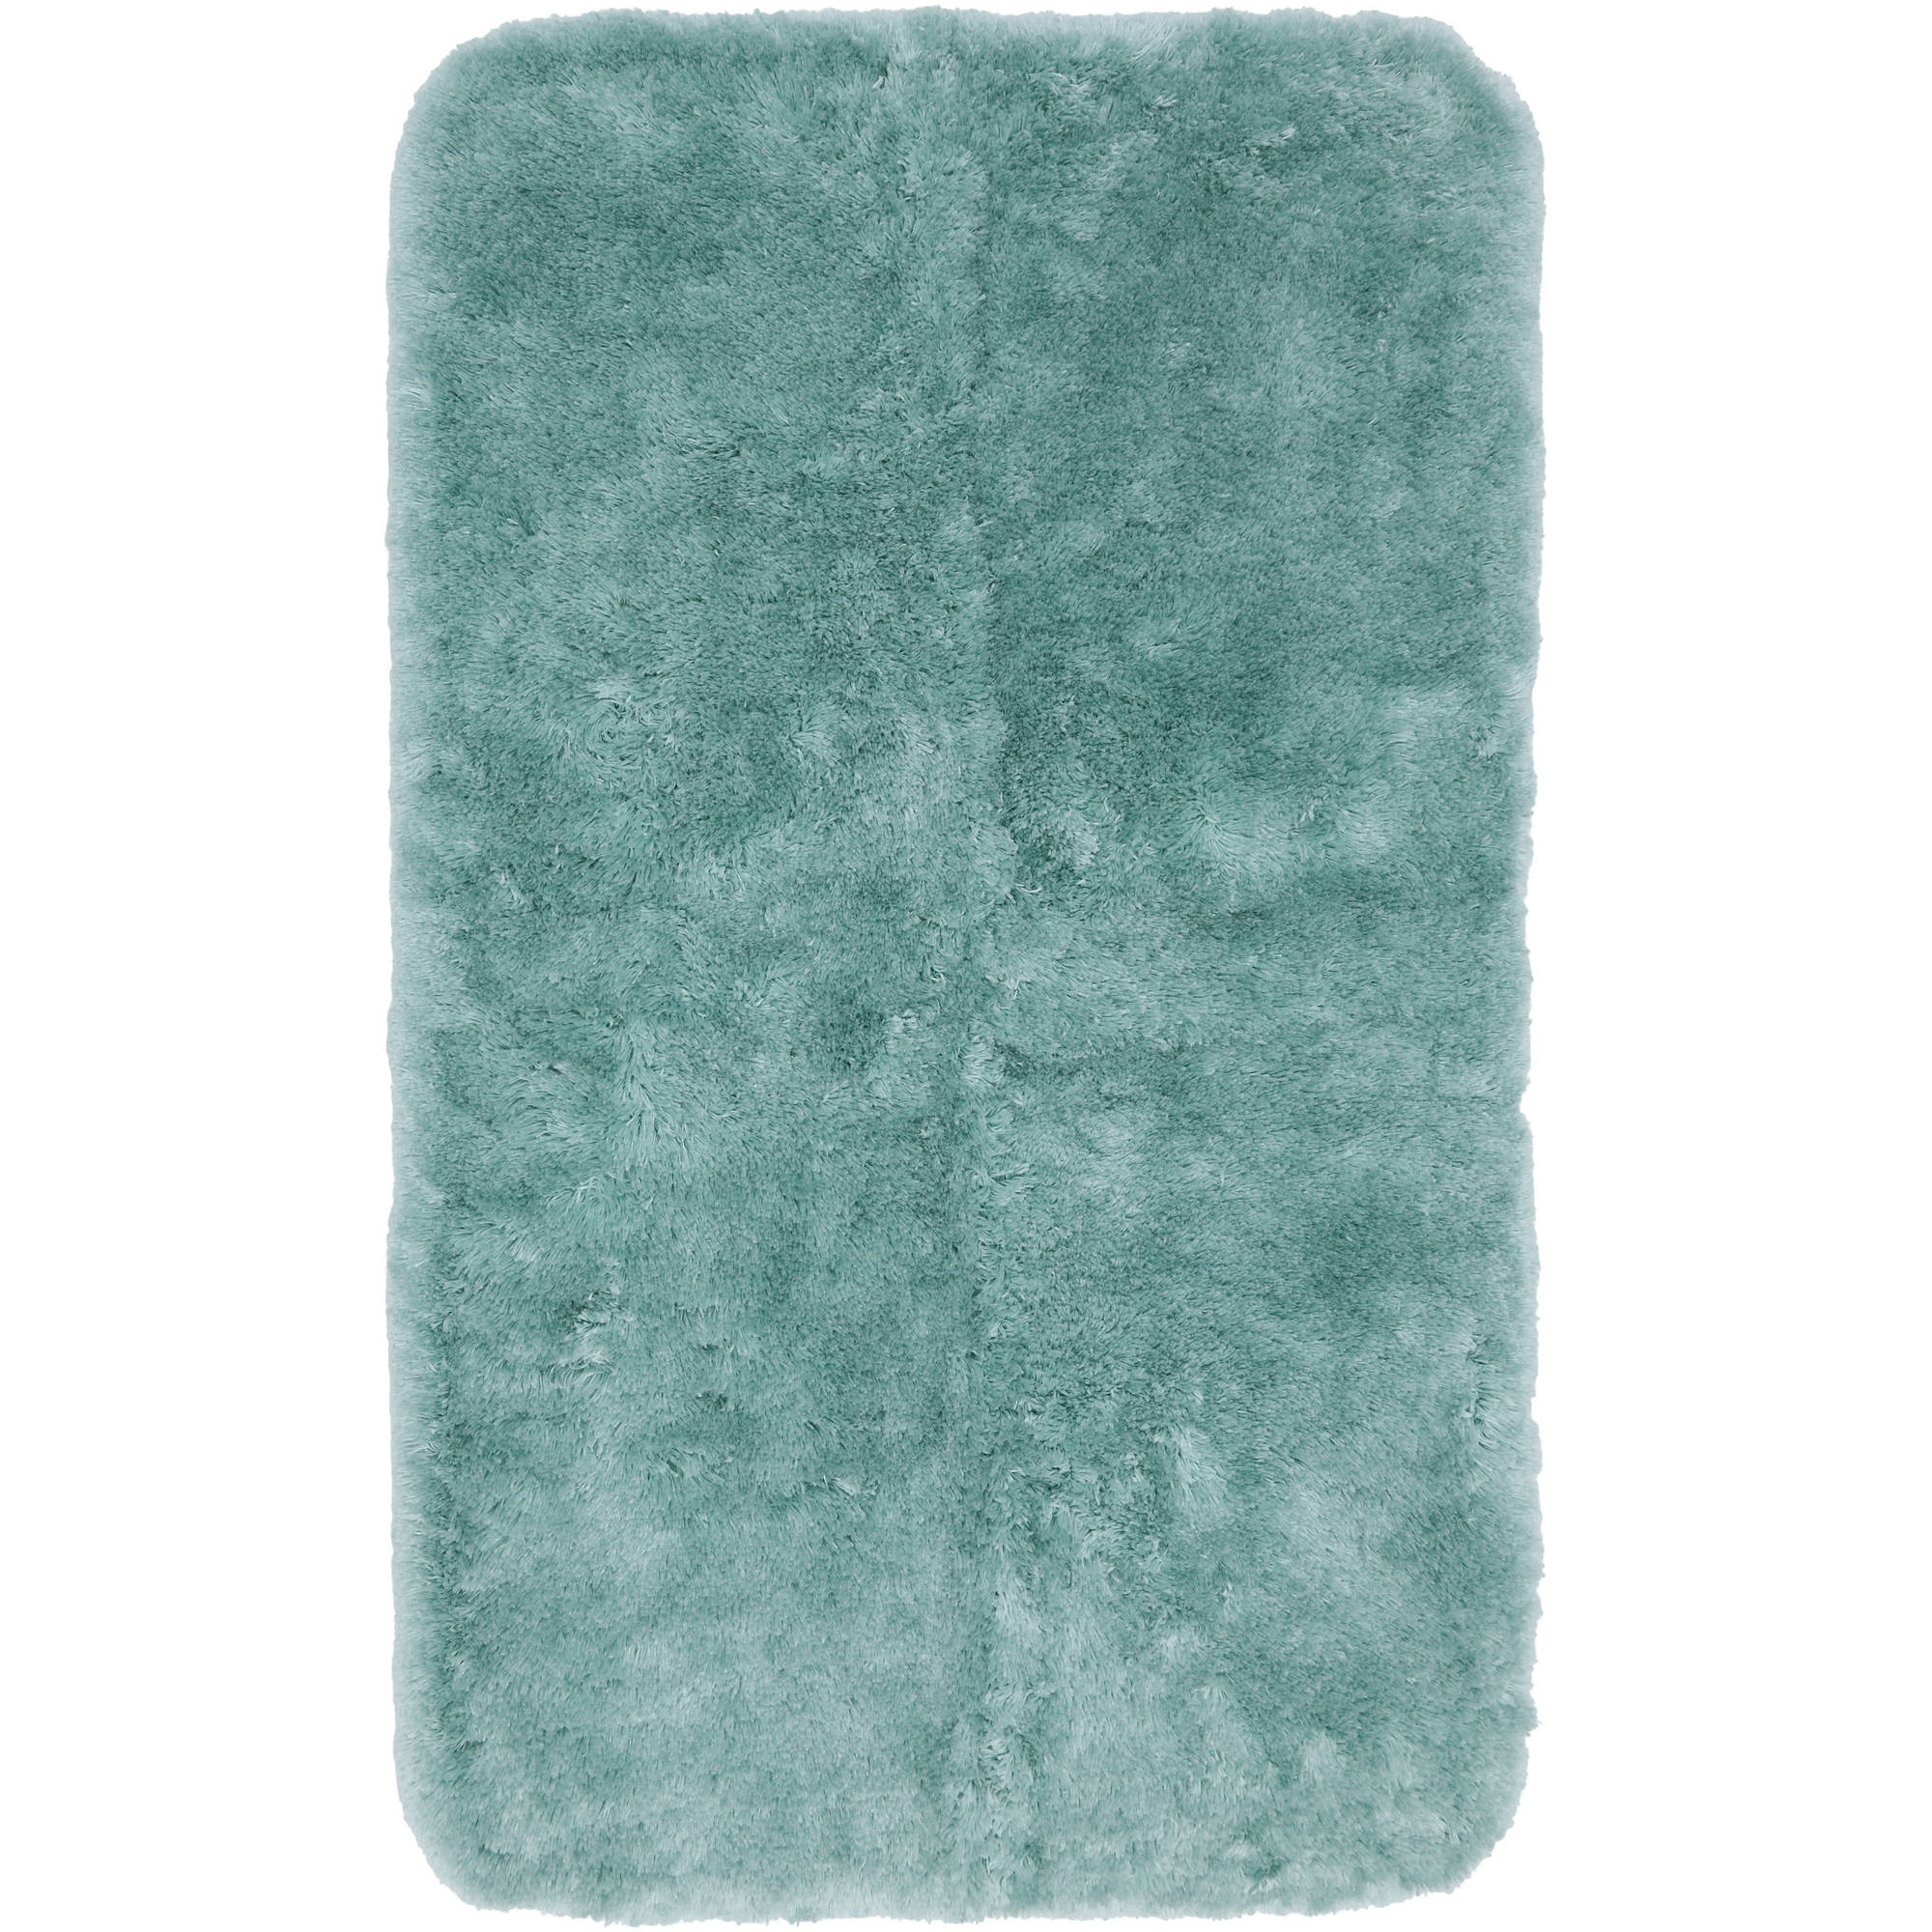 Thick Plush Bath Rugs